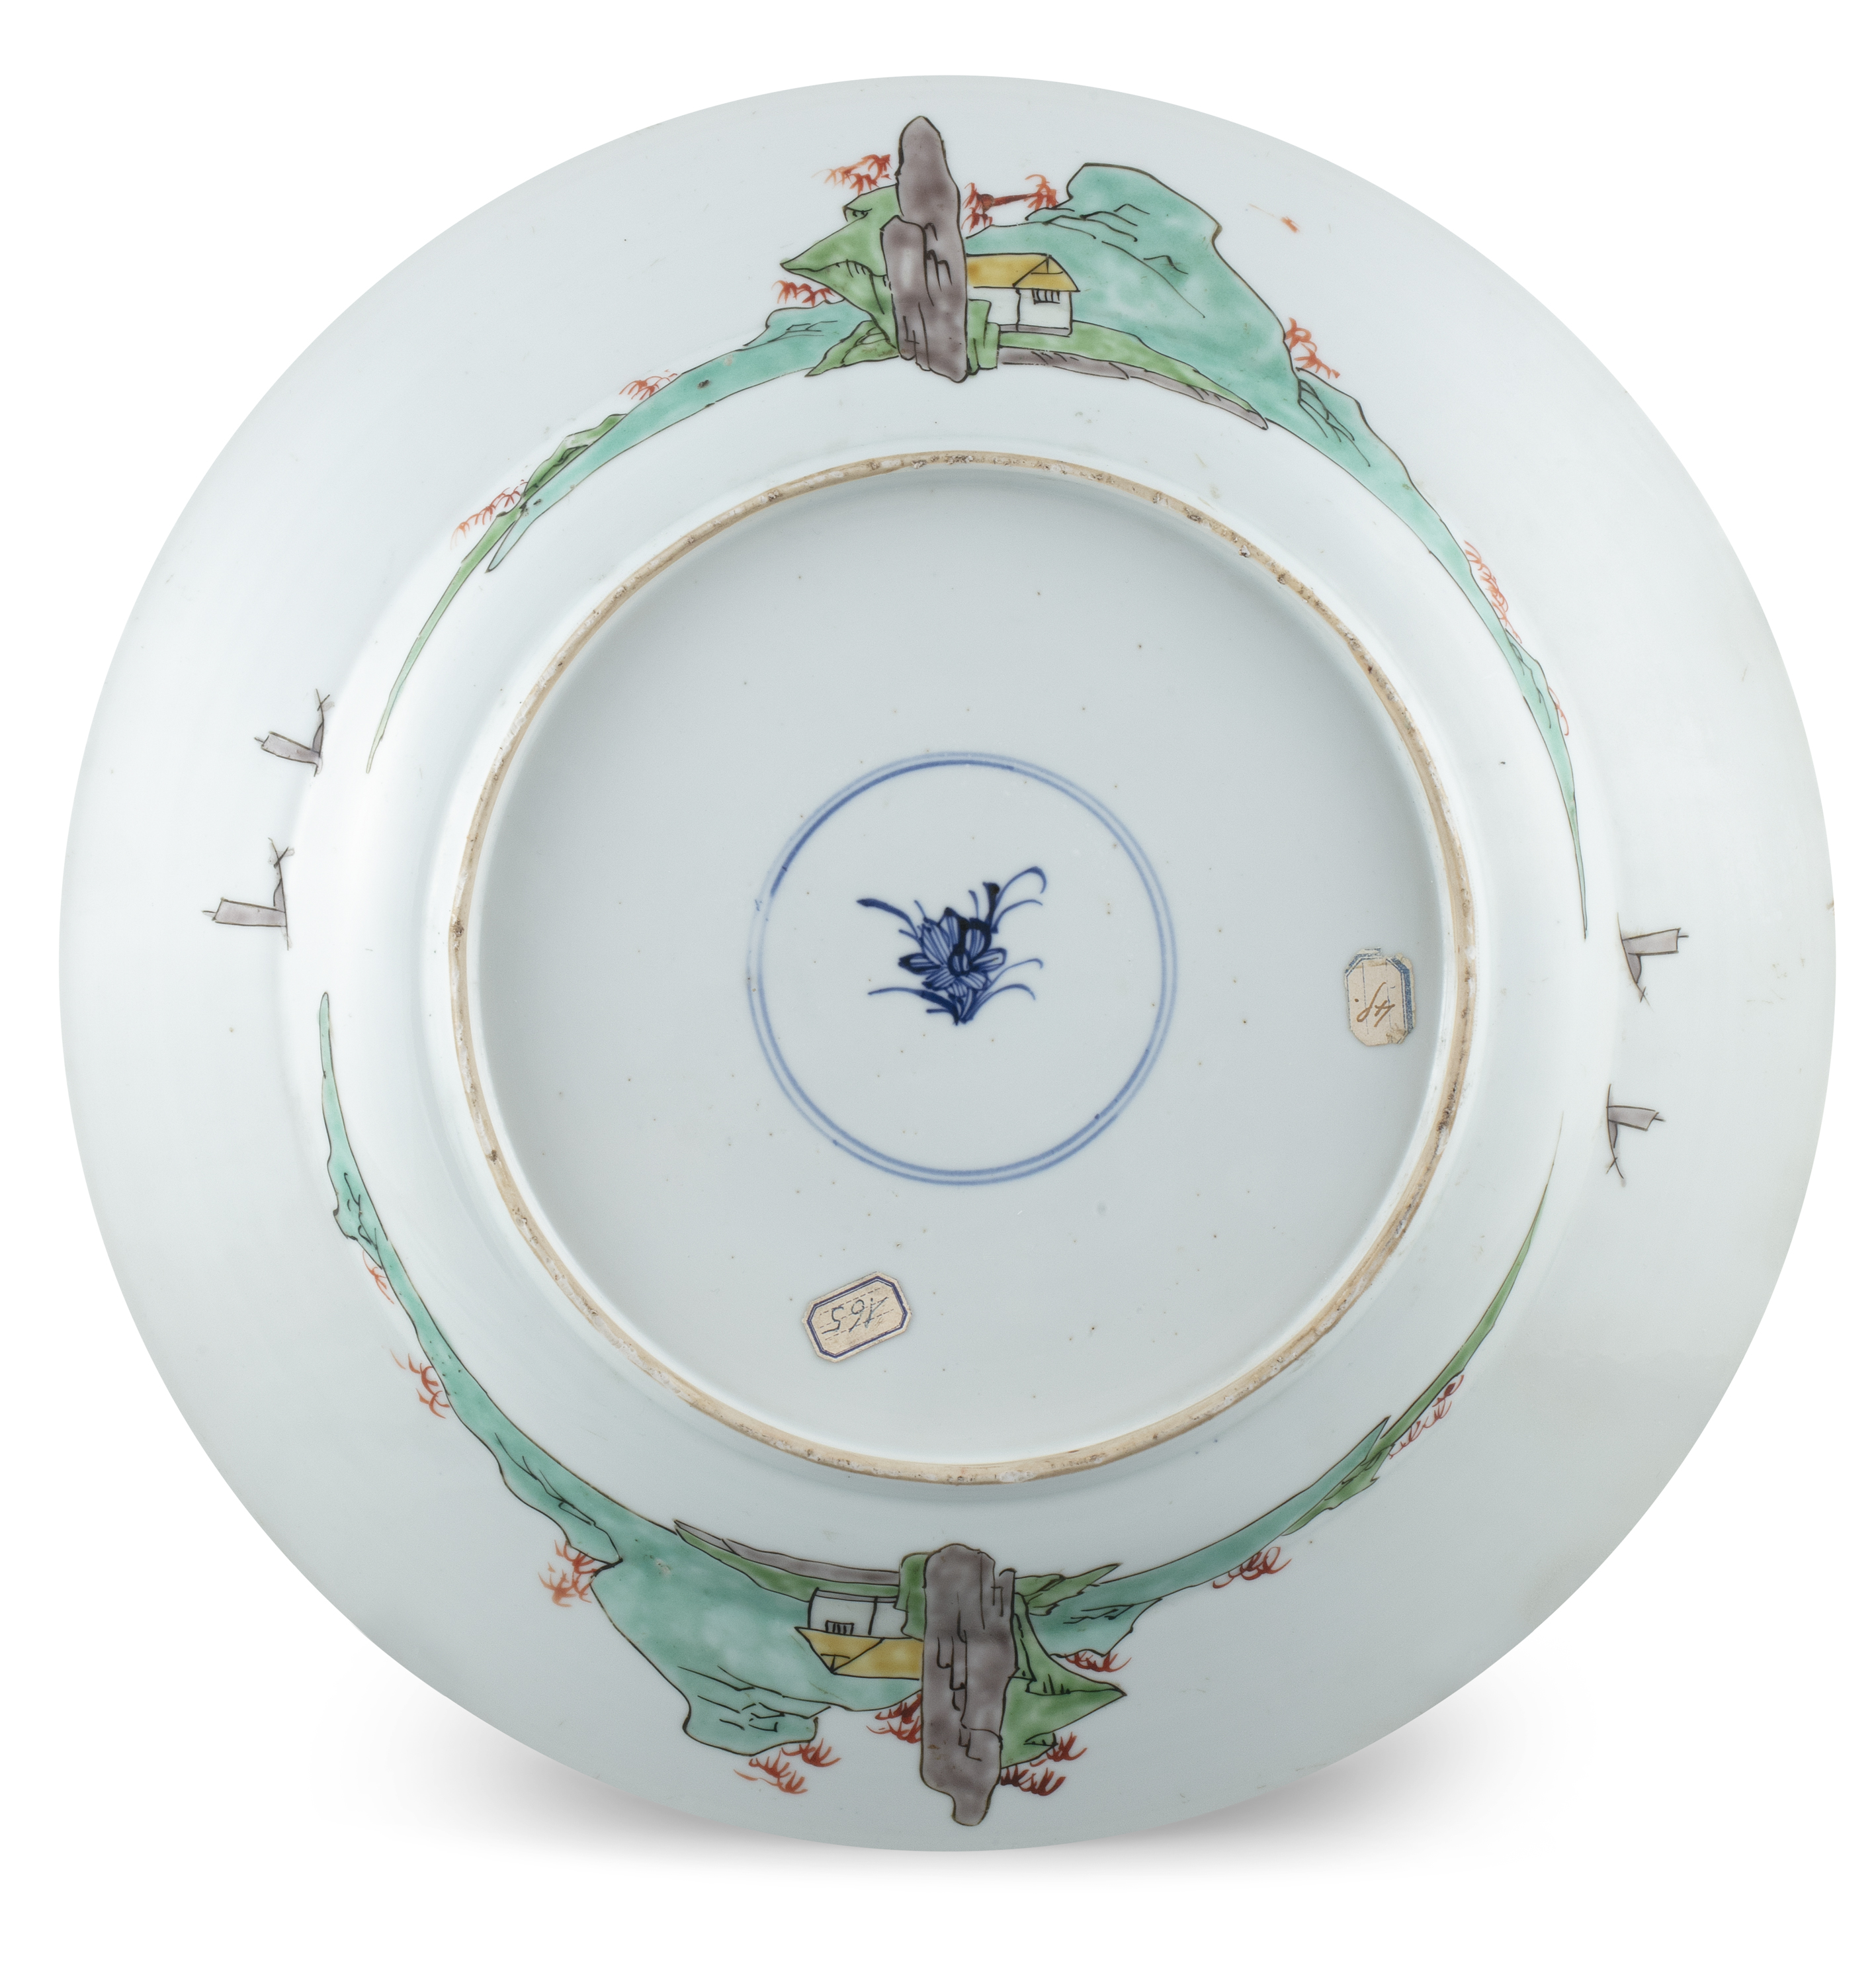 AN IMPORTANT PAIR OF FAMILLE VERTE 'FLYCATCHER AND MAGPIES' PORCELAIN SHALLOW DISHES China, Qing - Image 29 of 35